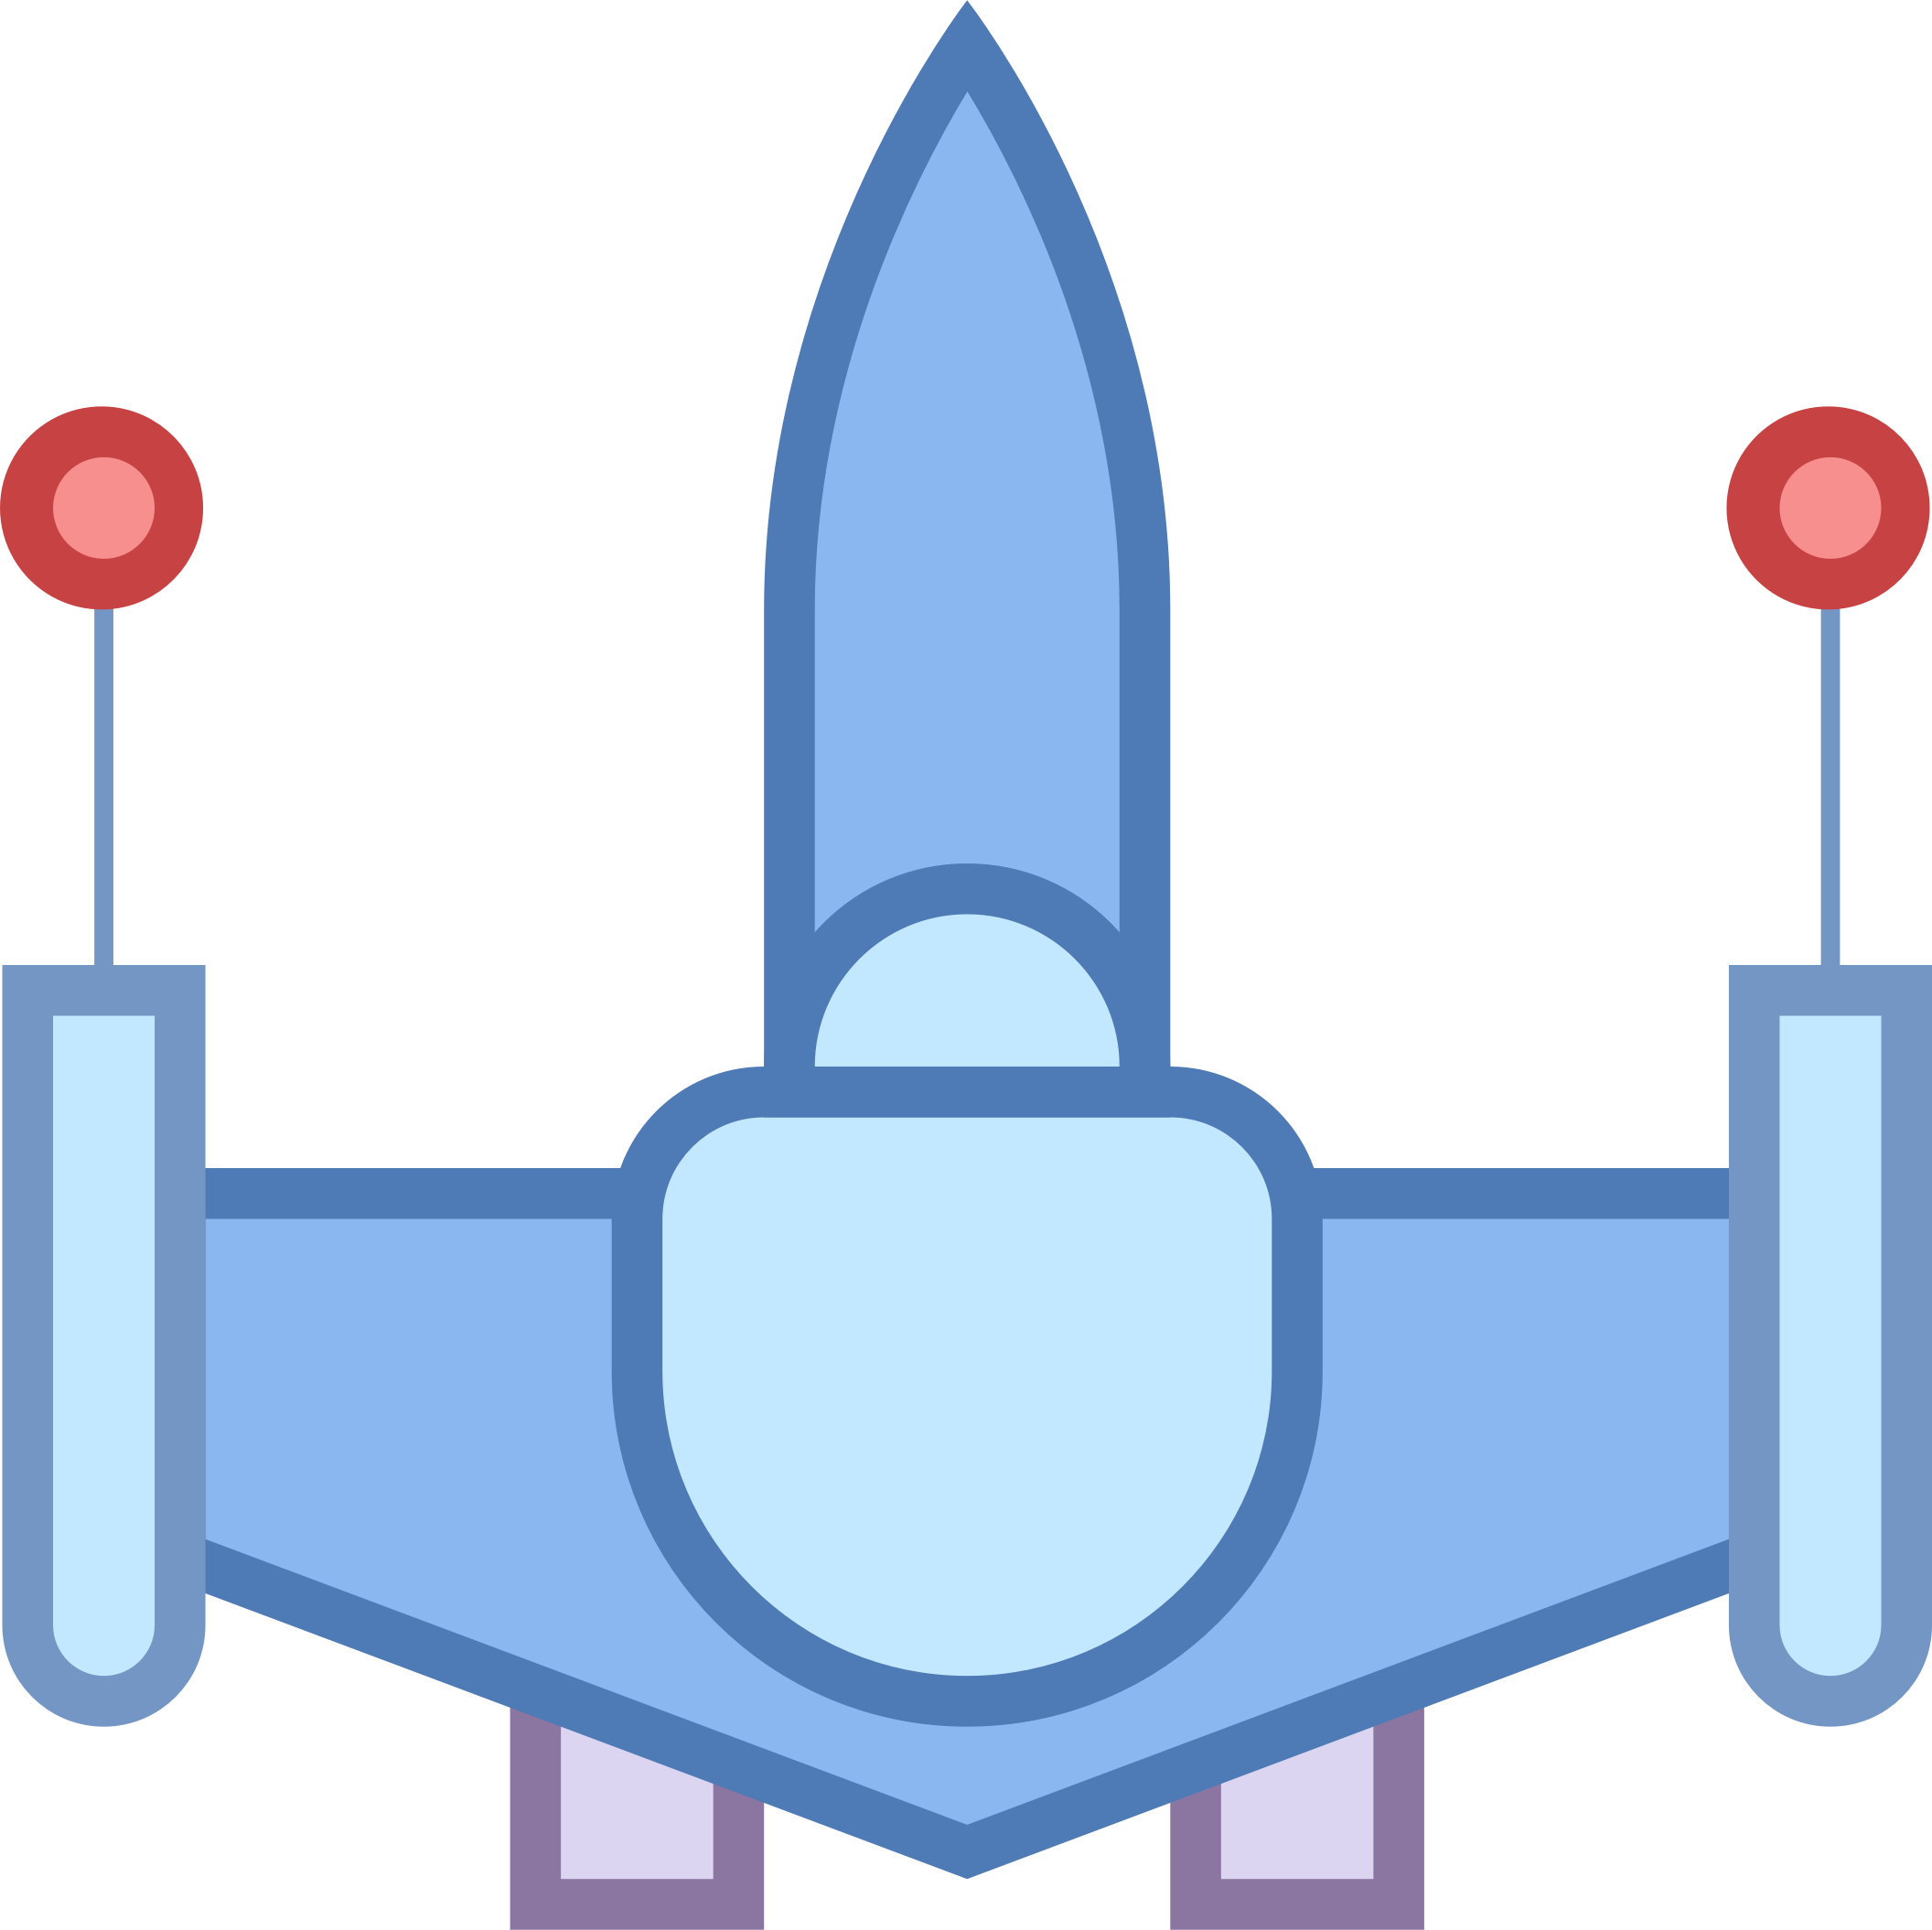 Fighter clipart. Space big image png